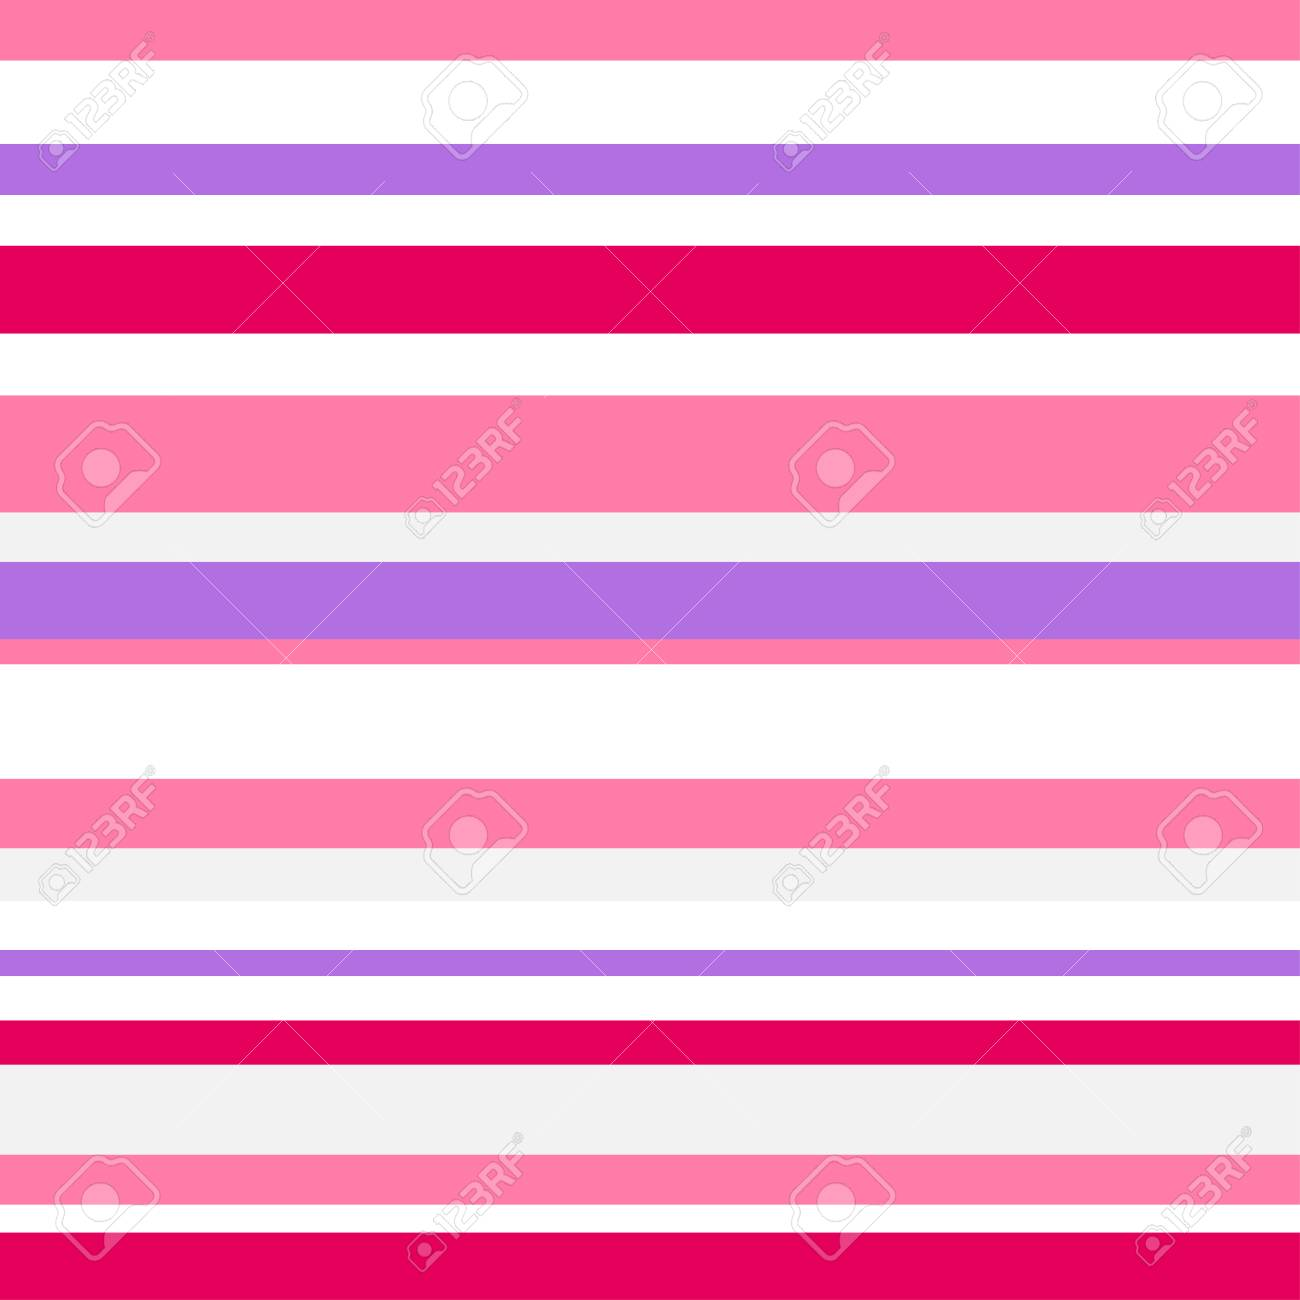 striped pattern with stylish and bright colors red pink and royalty free cliparts vectors and stock illustration image 88678860 striped pattern with stylish and bright colors red pink and